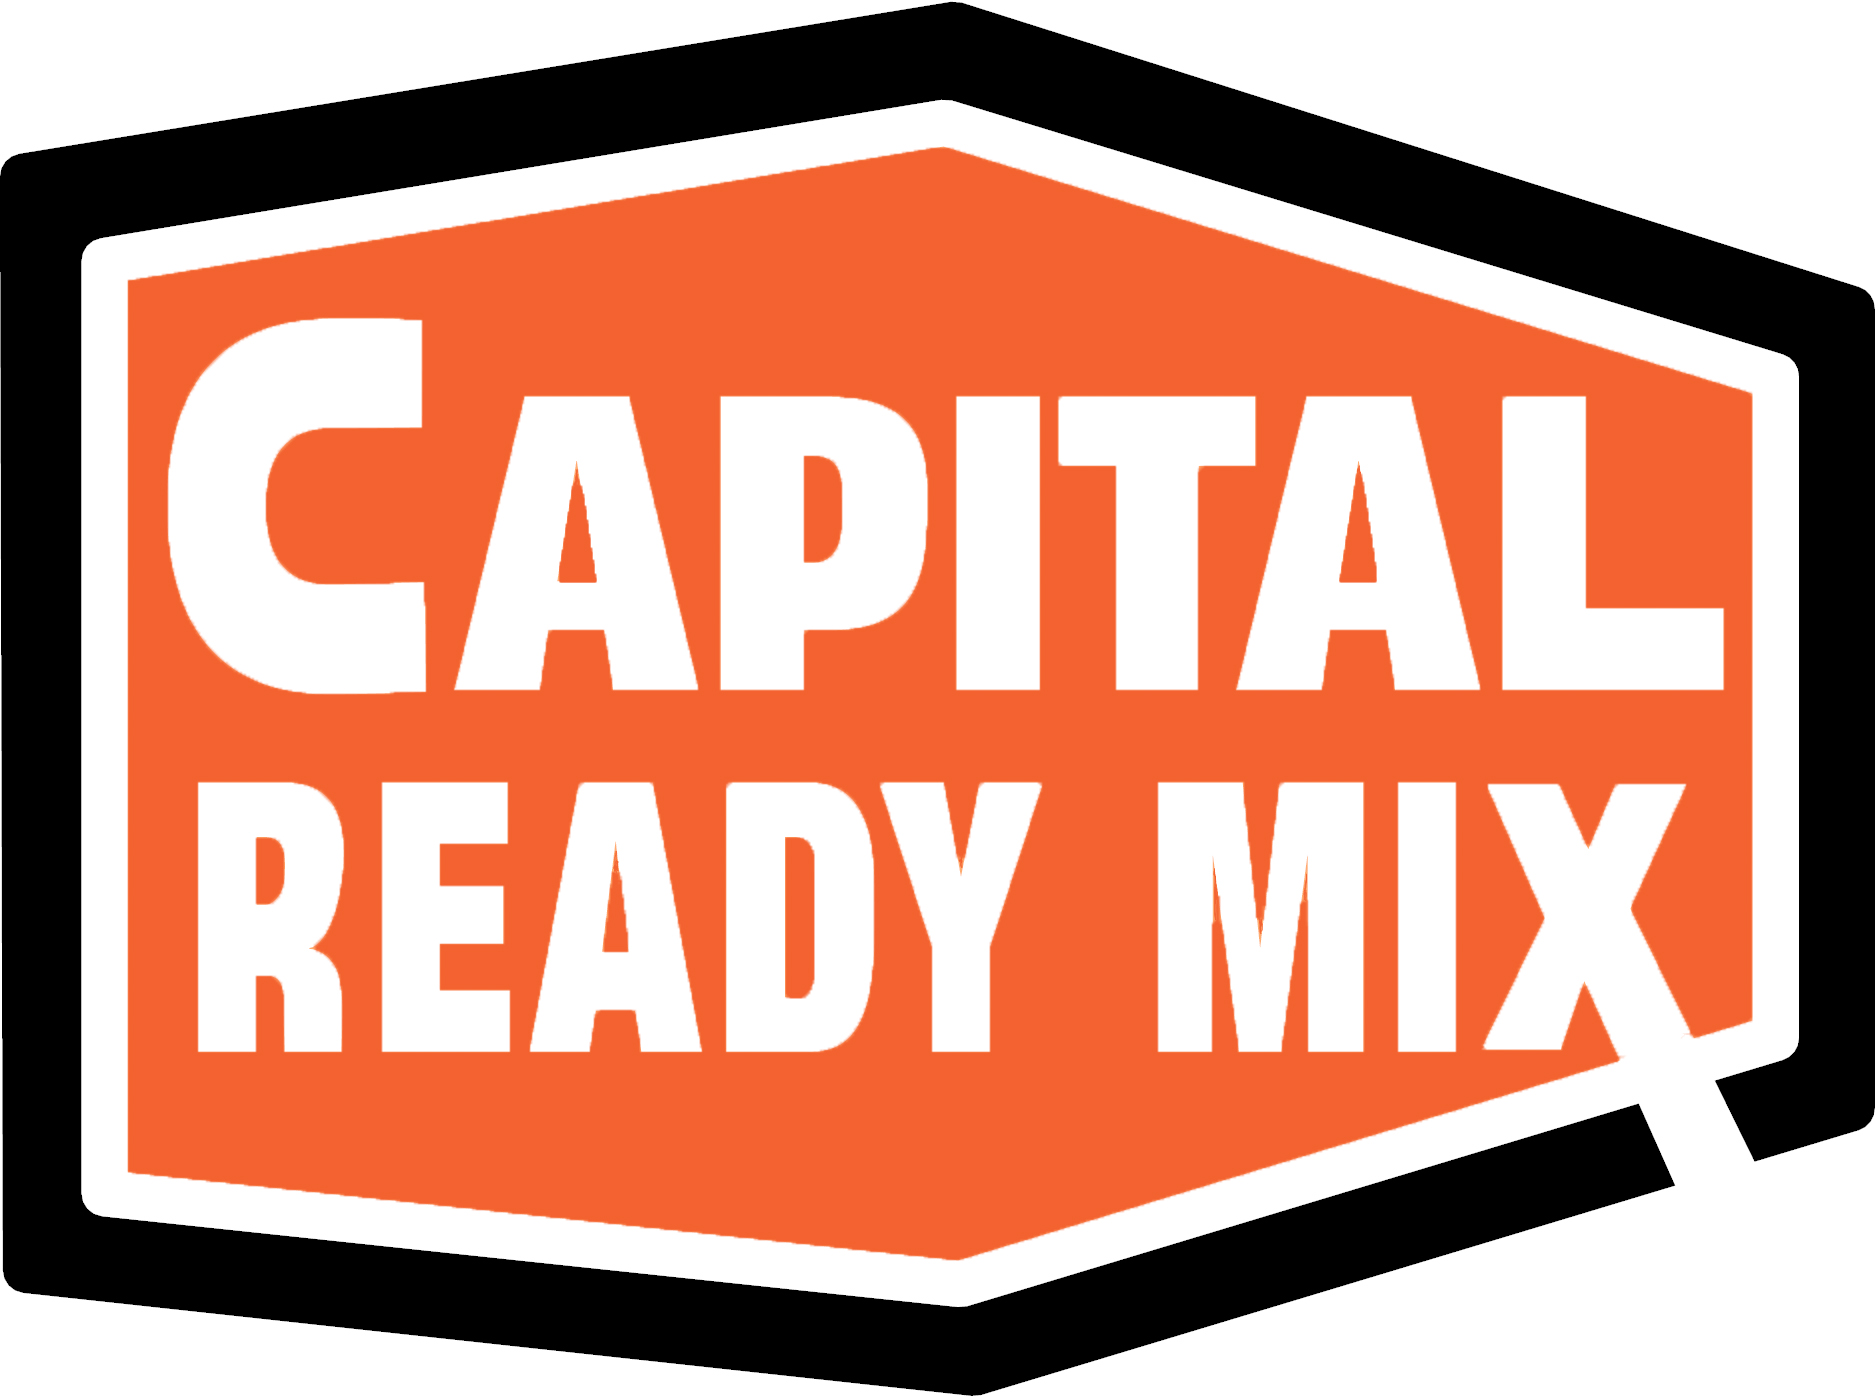 Capital Ready Mix logoNEW